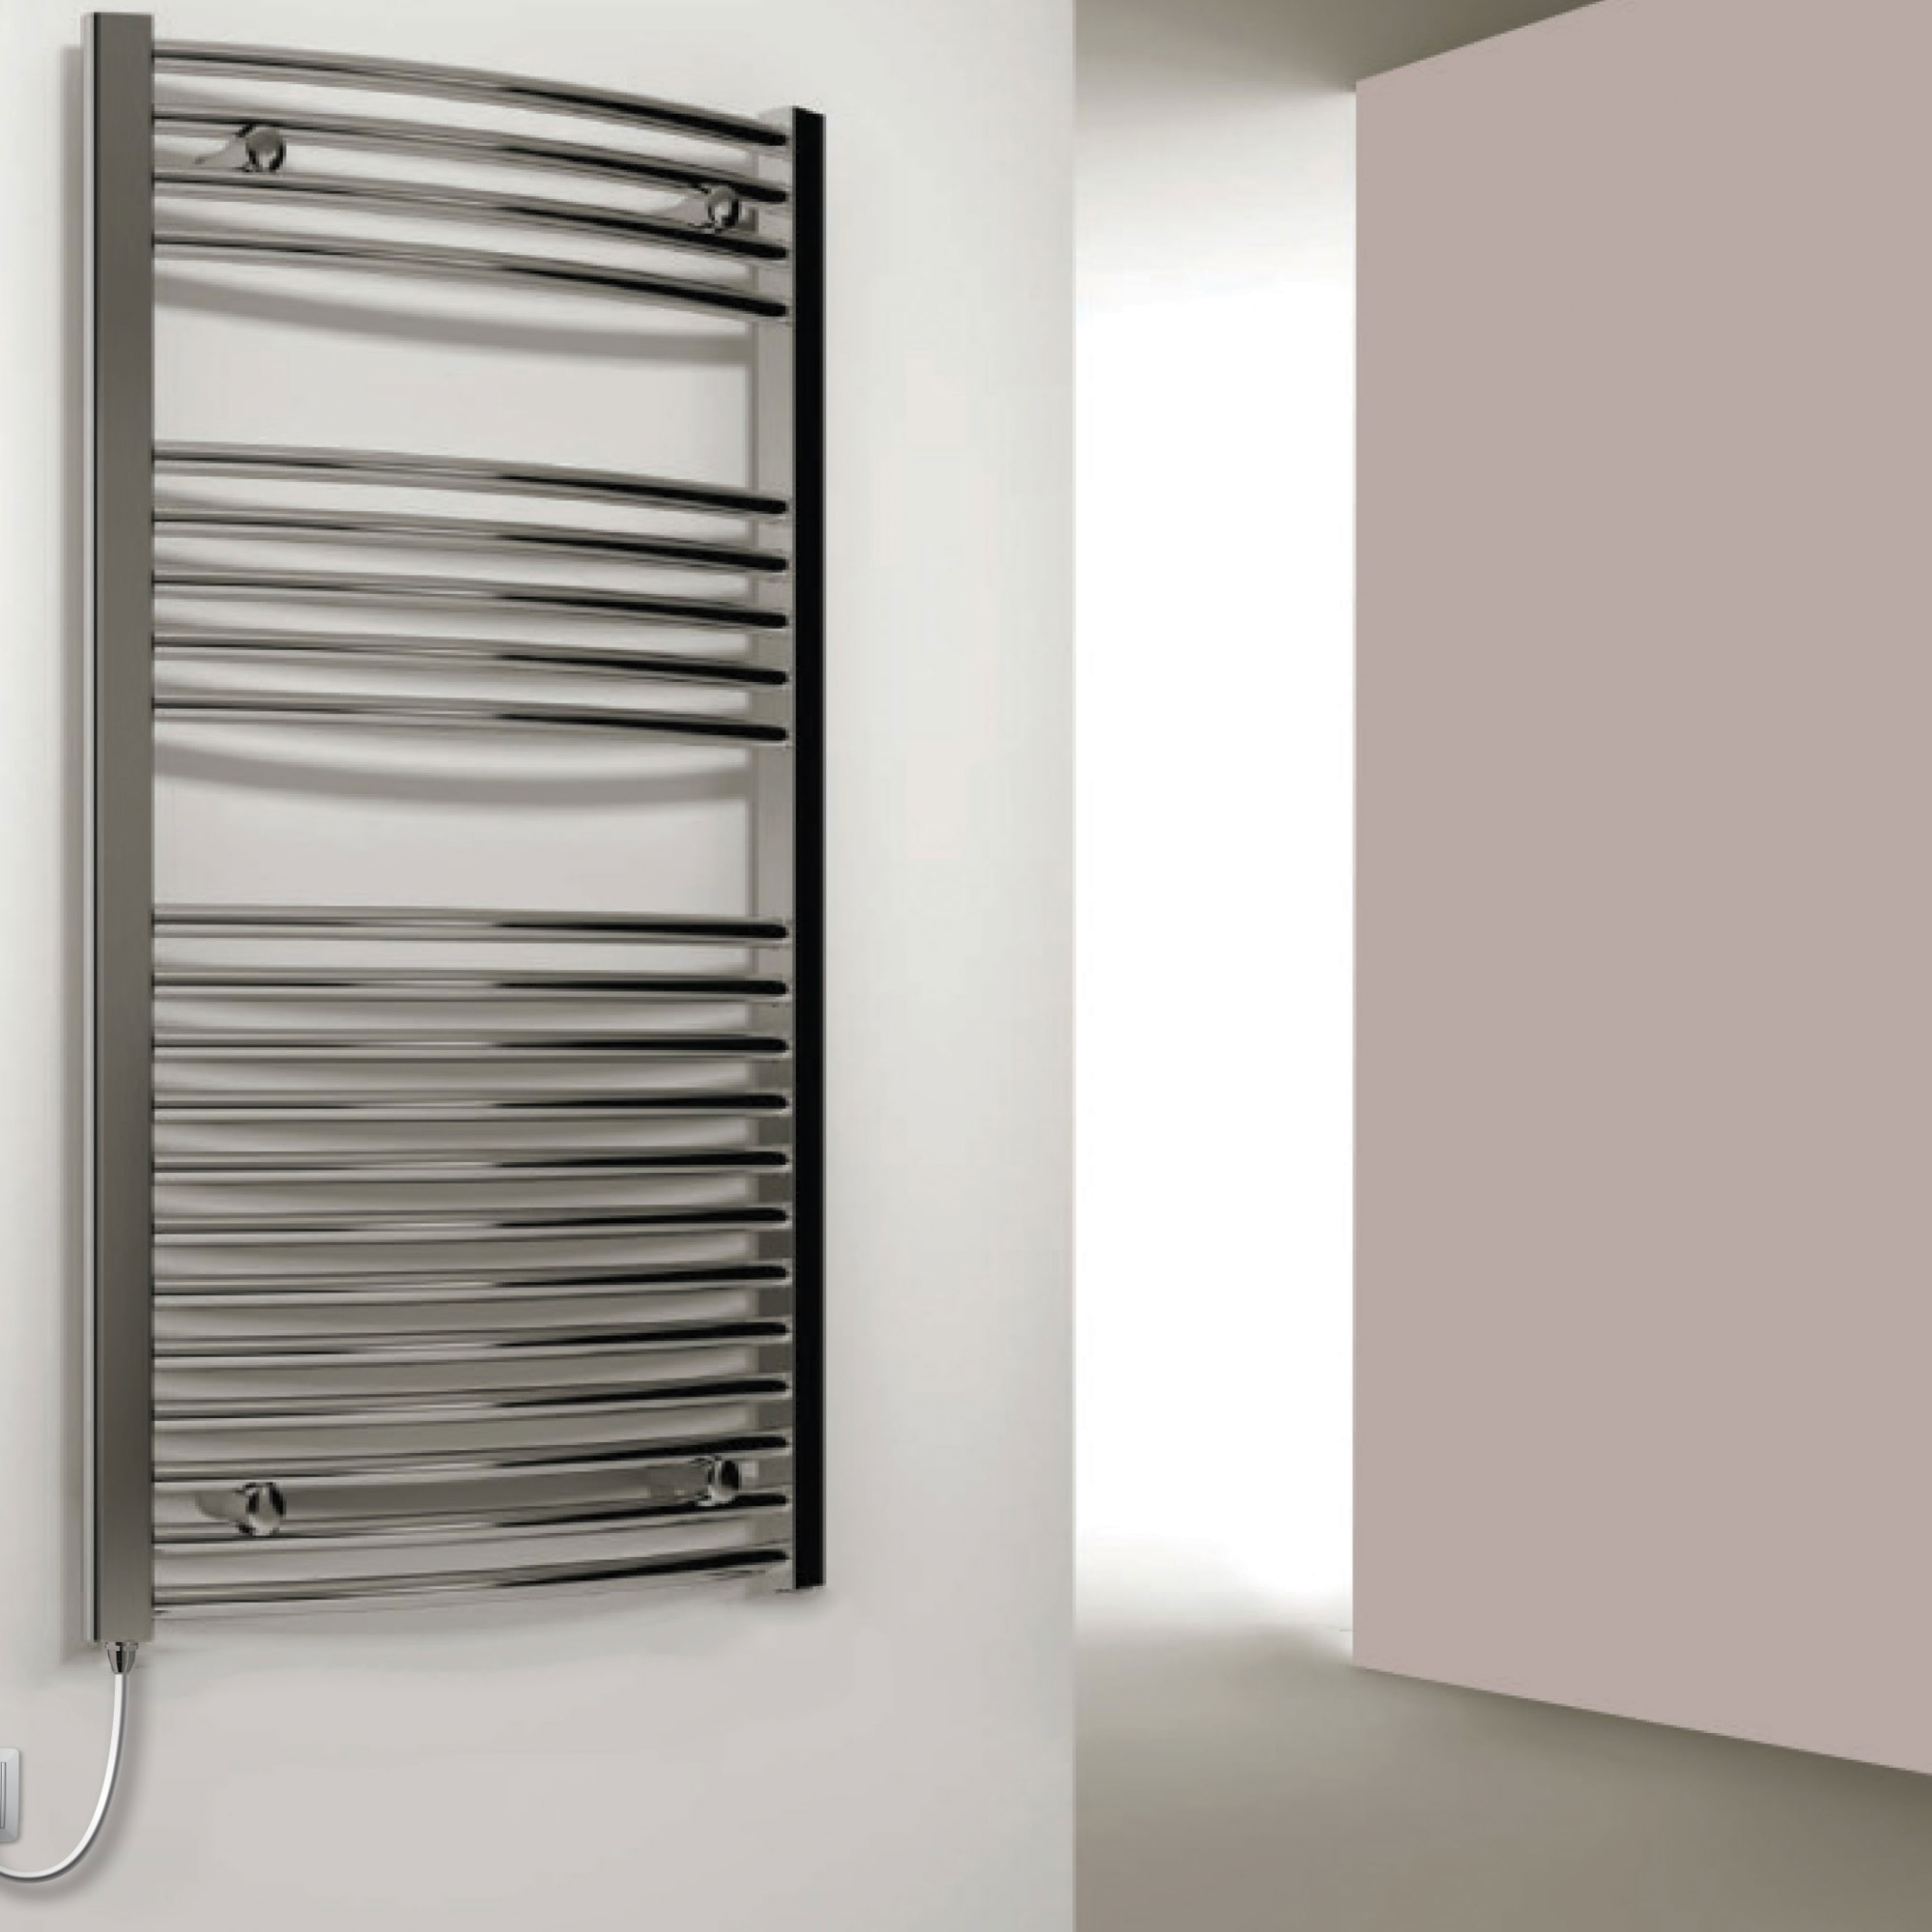 Reina Capo Curved Thermostatic Electric Heated Towel Rail 1000mm H x 500mm W Chrome